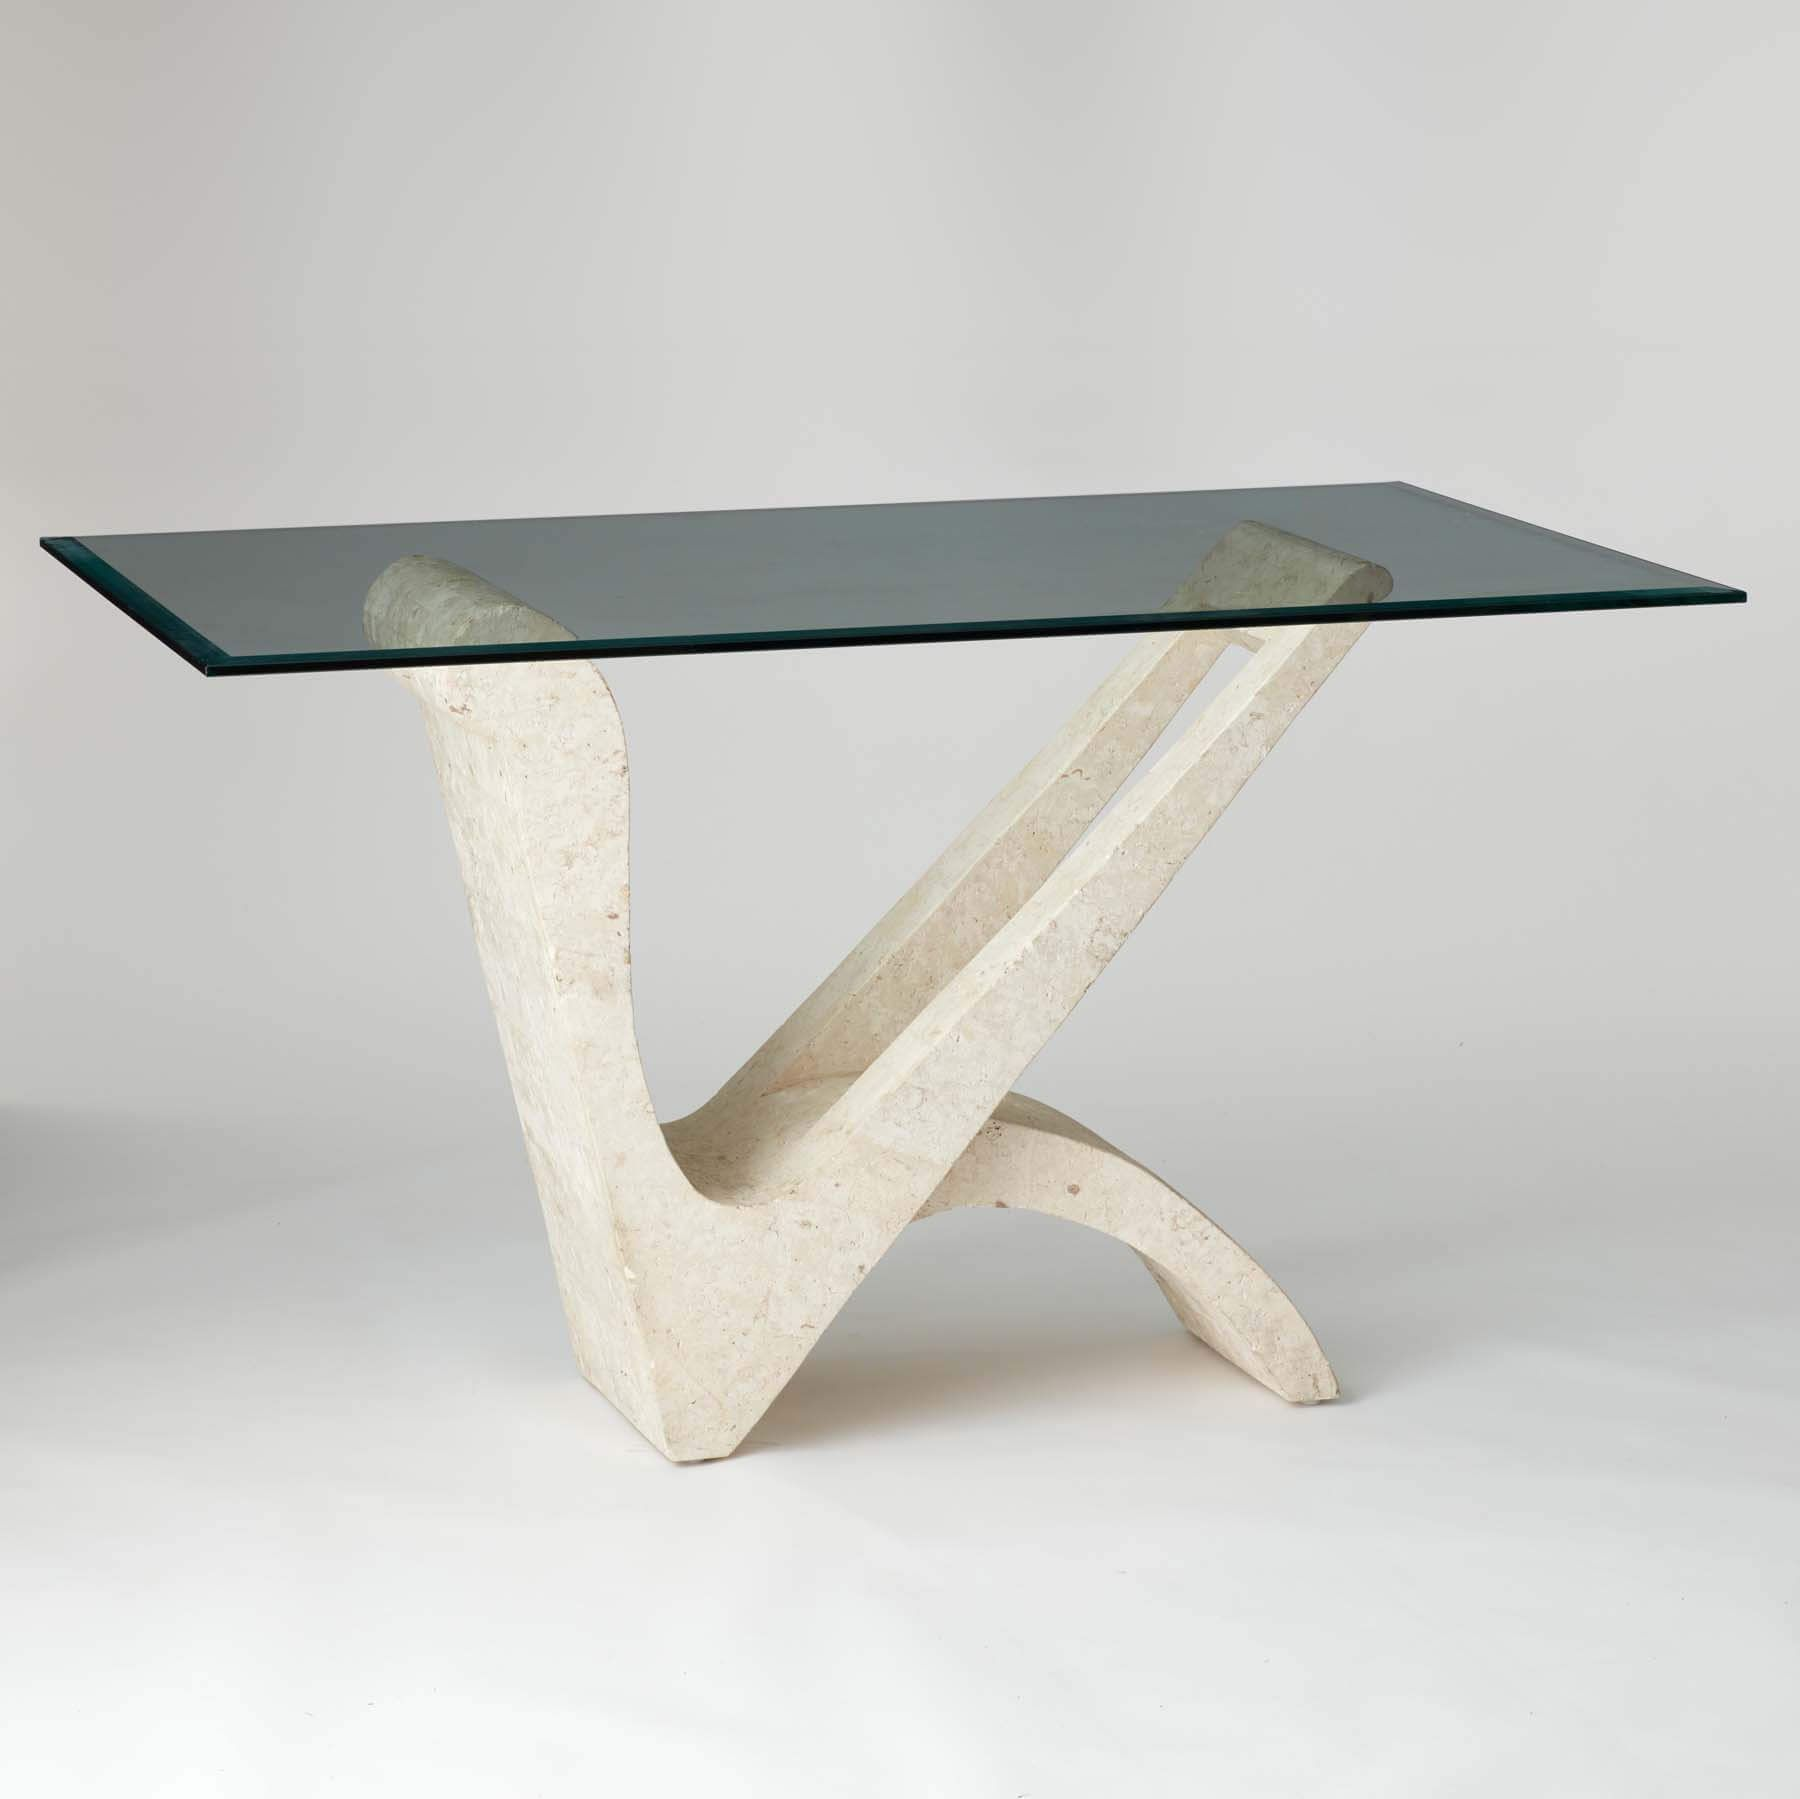 Vintage 1970s Italian Glass Console Table With Marble Stand In 2020 Glass Console Table Metal Table Legs Console Table [ 1799 x 1800 Pixel ]